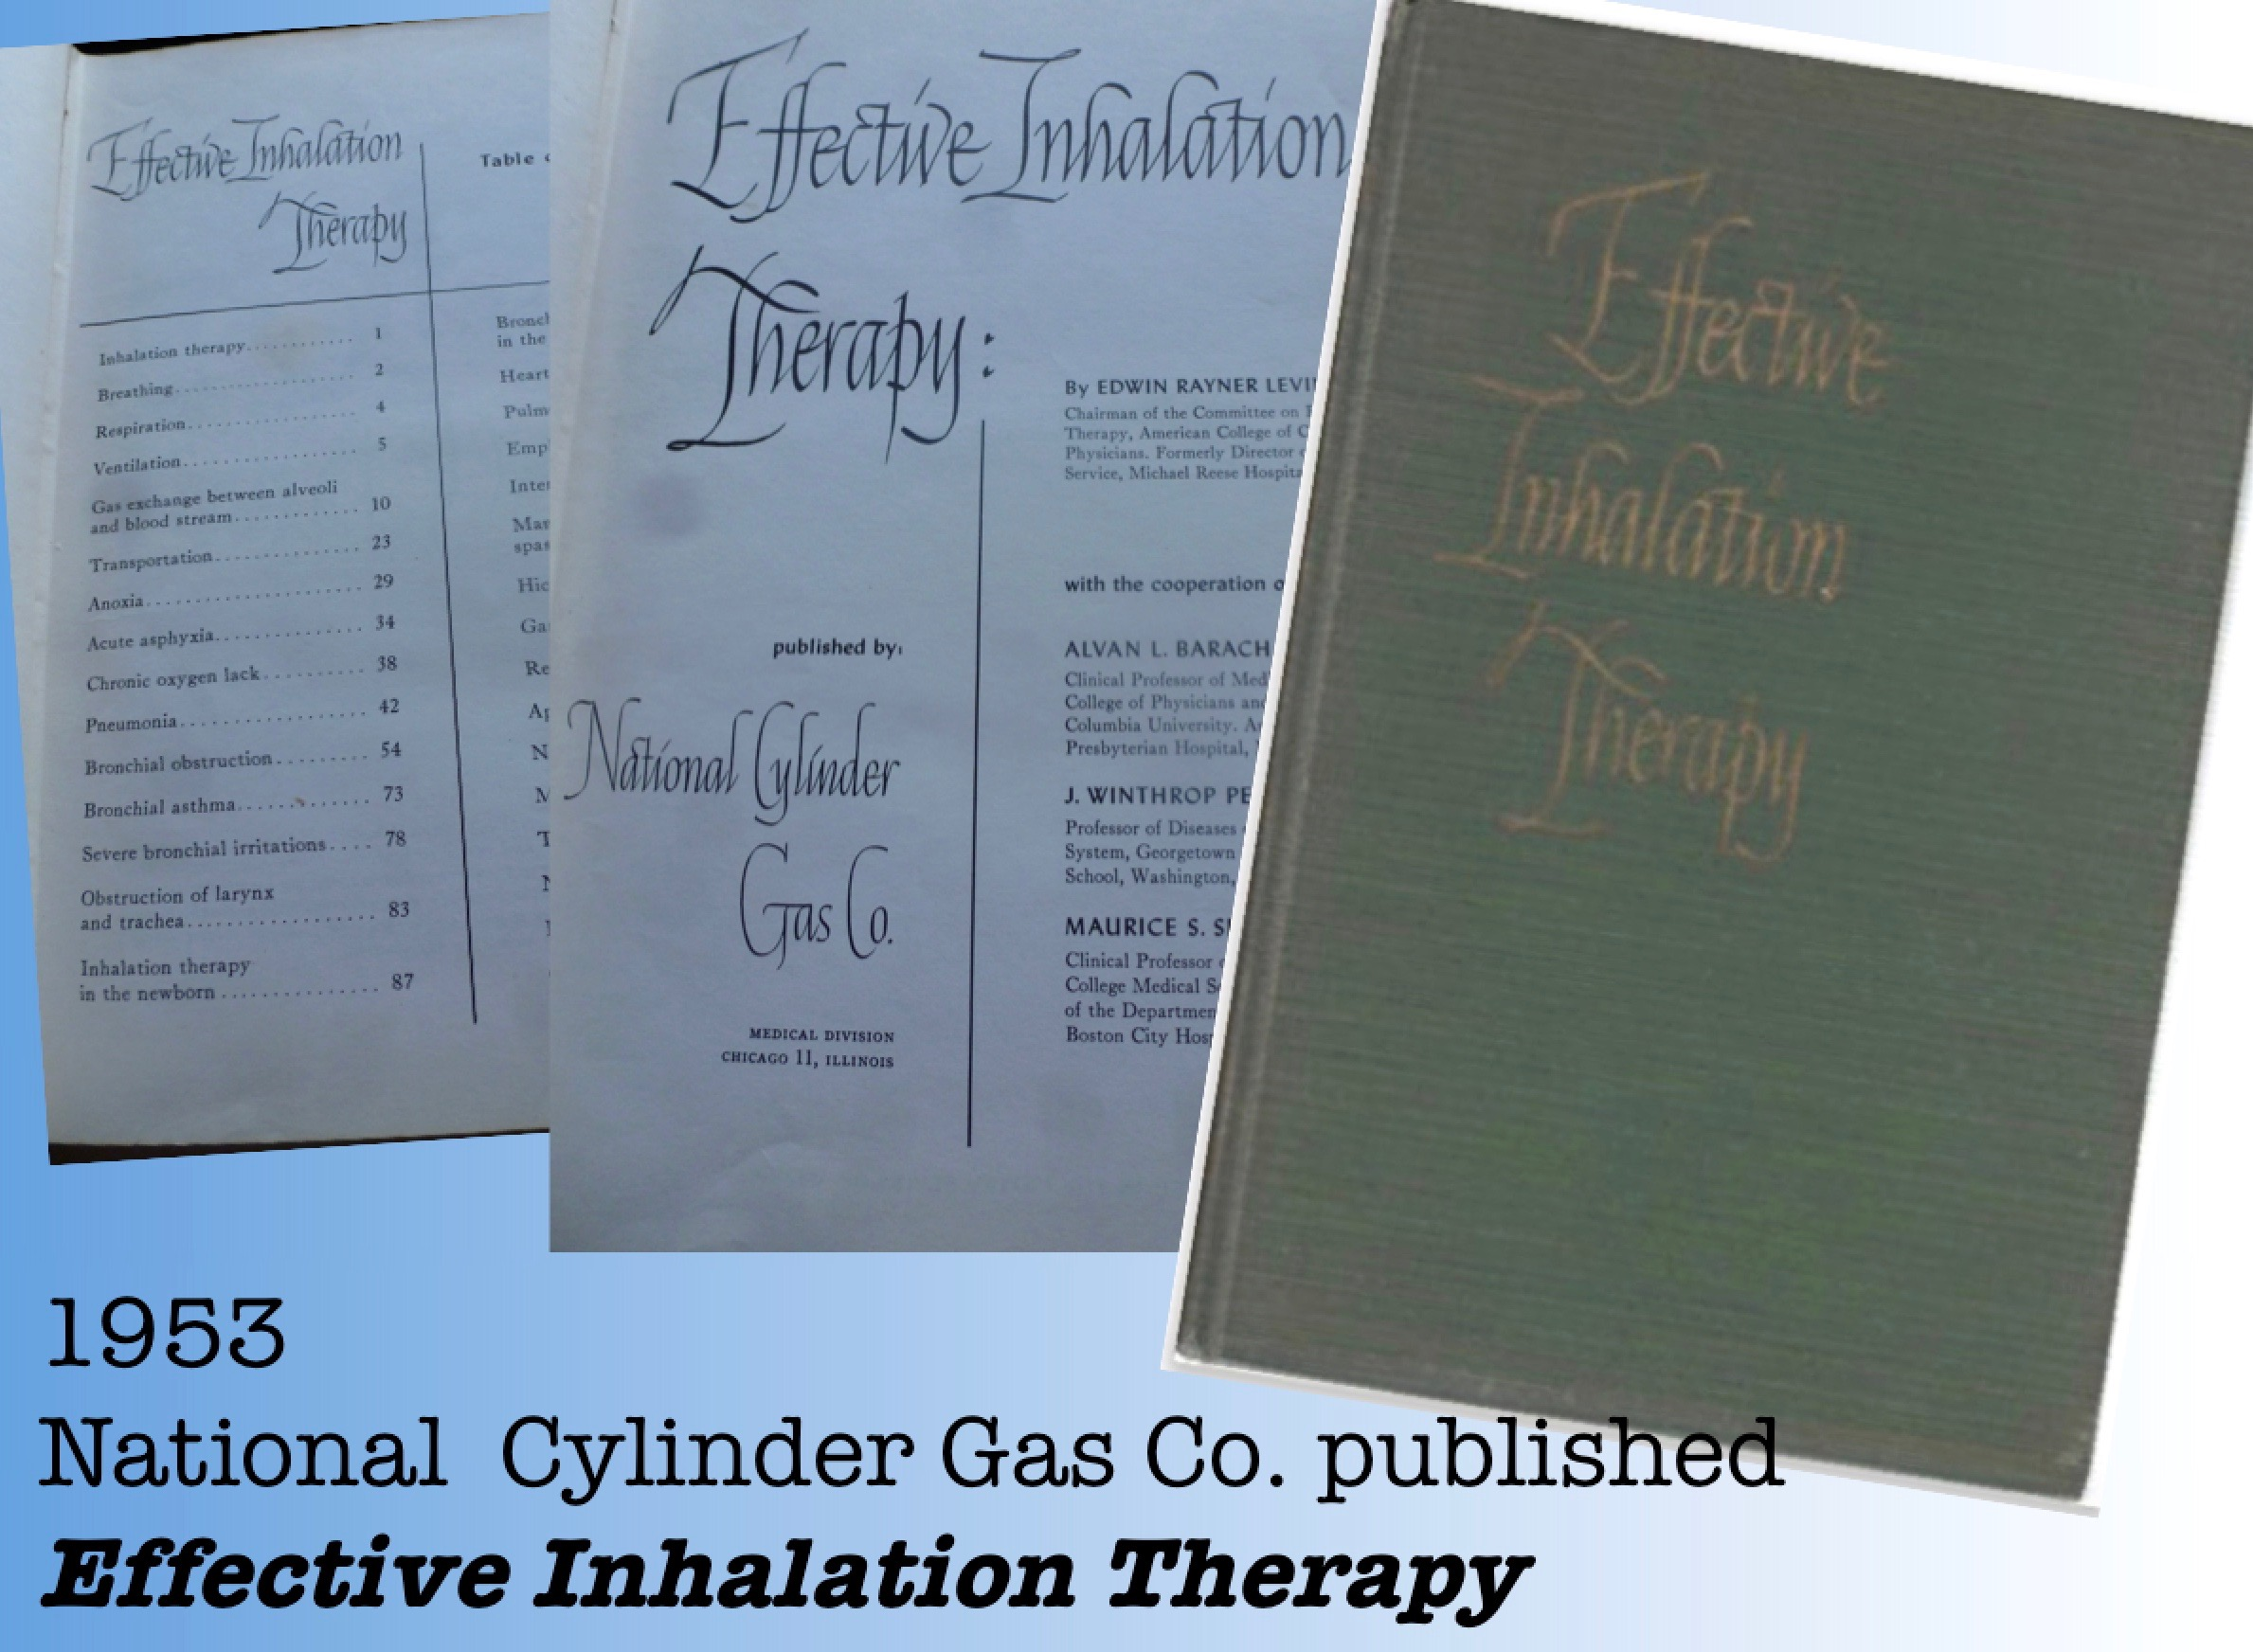 1953 – Effective Inhalation Therapy published